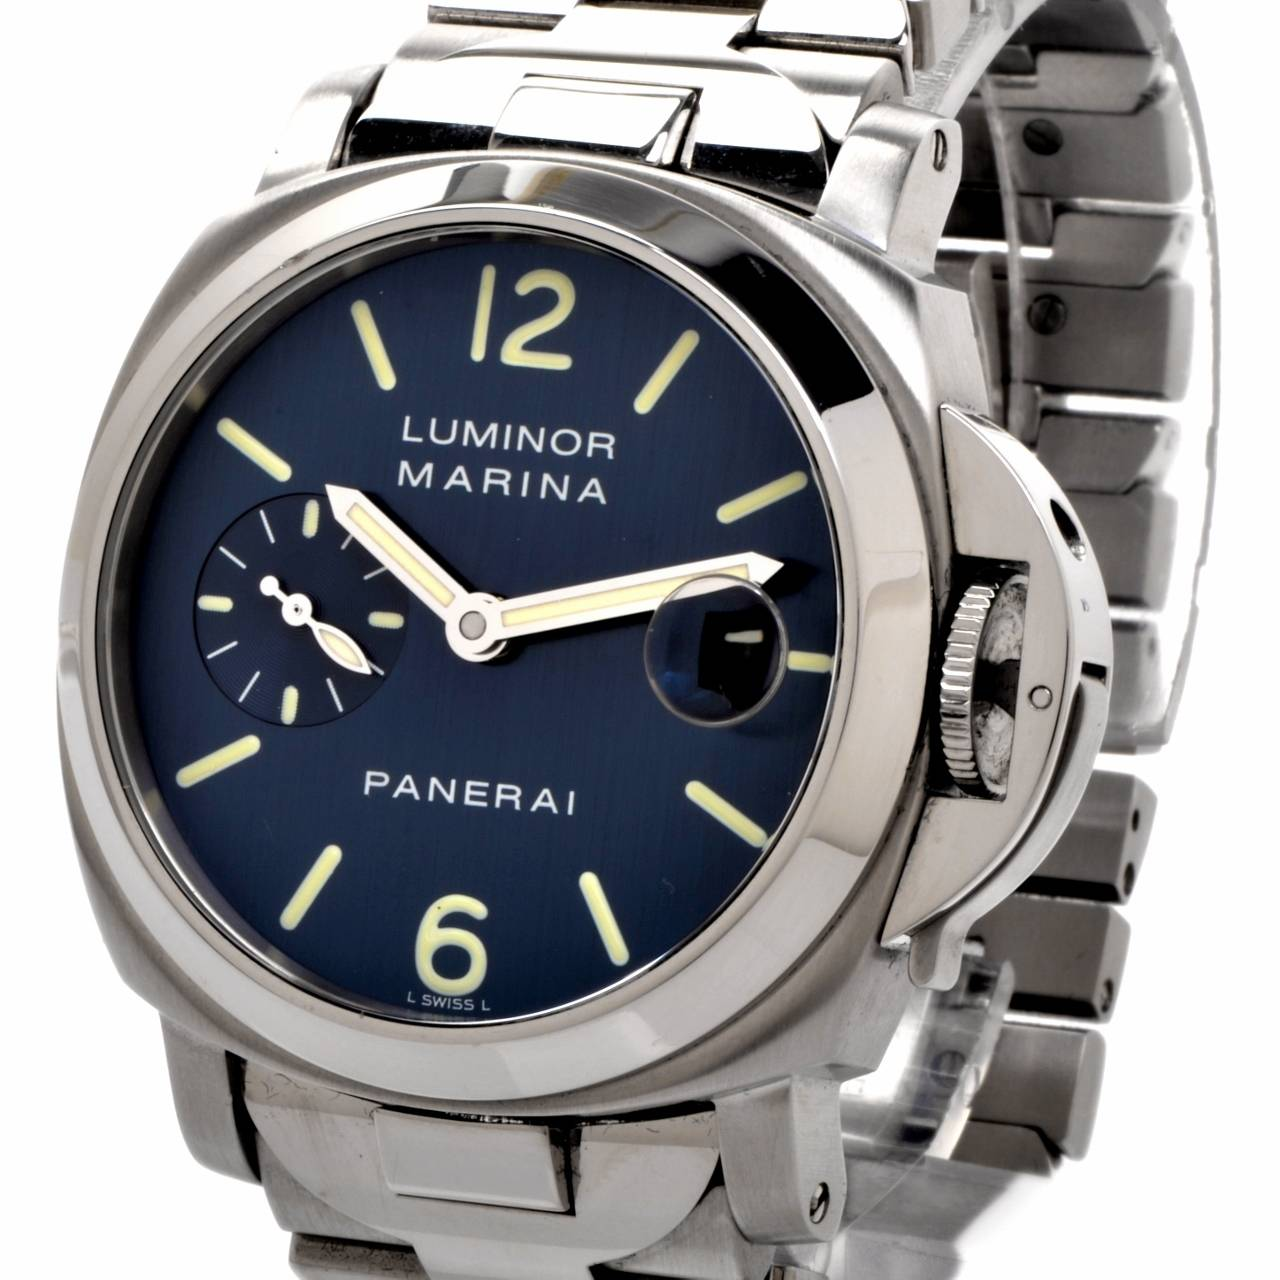 Panerai Stainless Steel Luminor Marina Automatic 40mm Blue Dial Wristwatch  For Sale 3 a45f8283254d